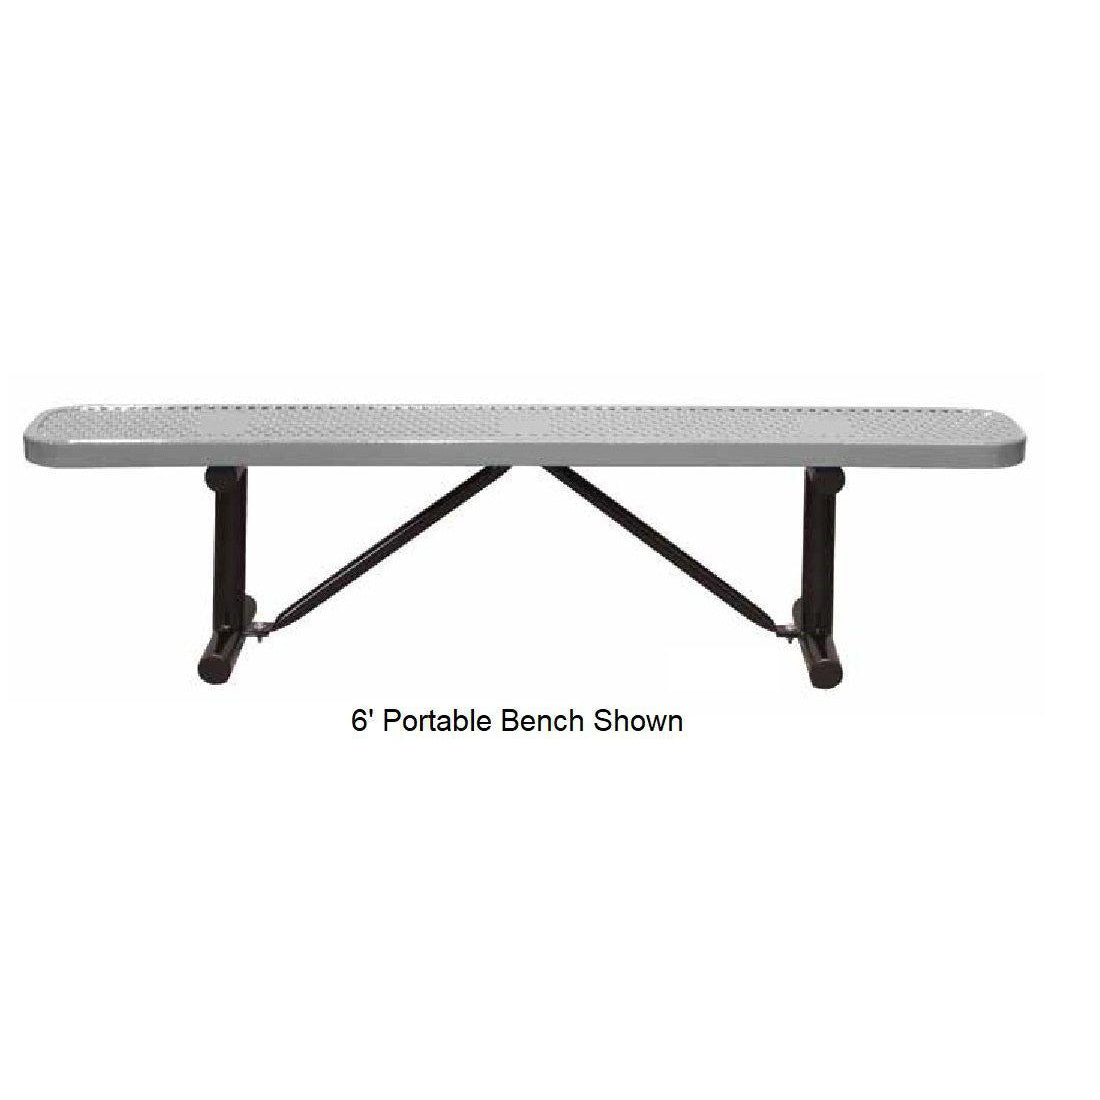 6' Standard Perforated Bench Without Back, In Ground Mount